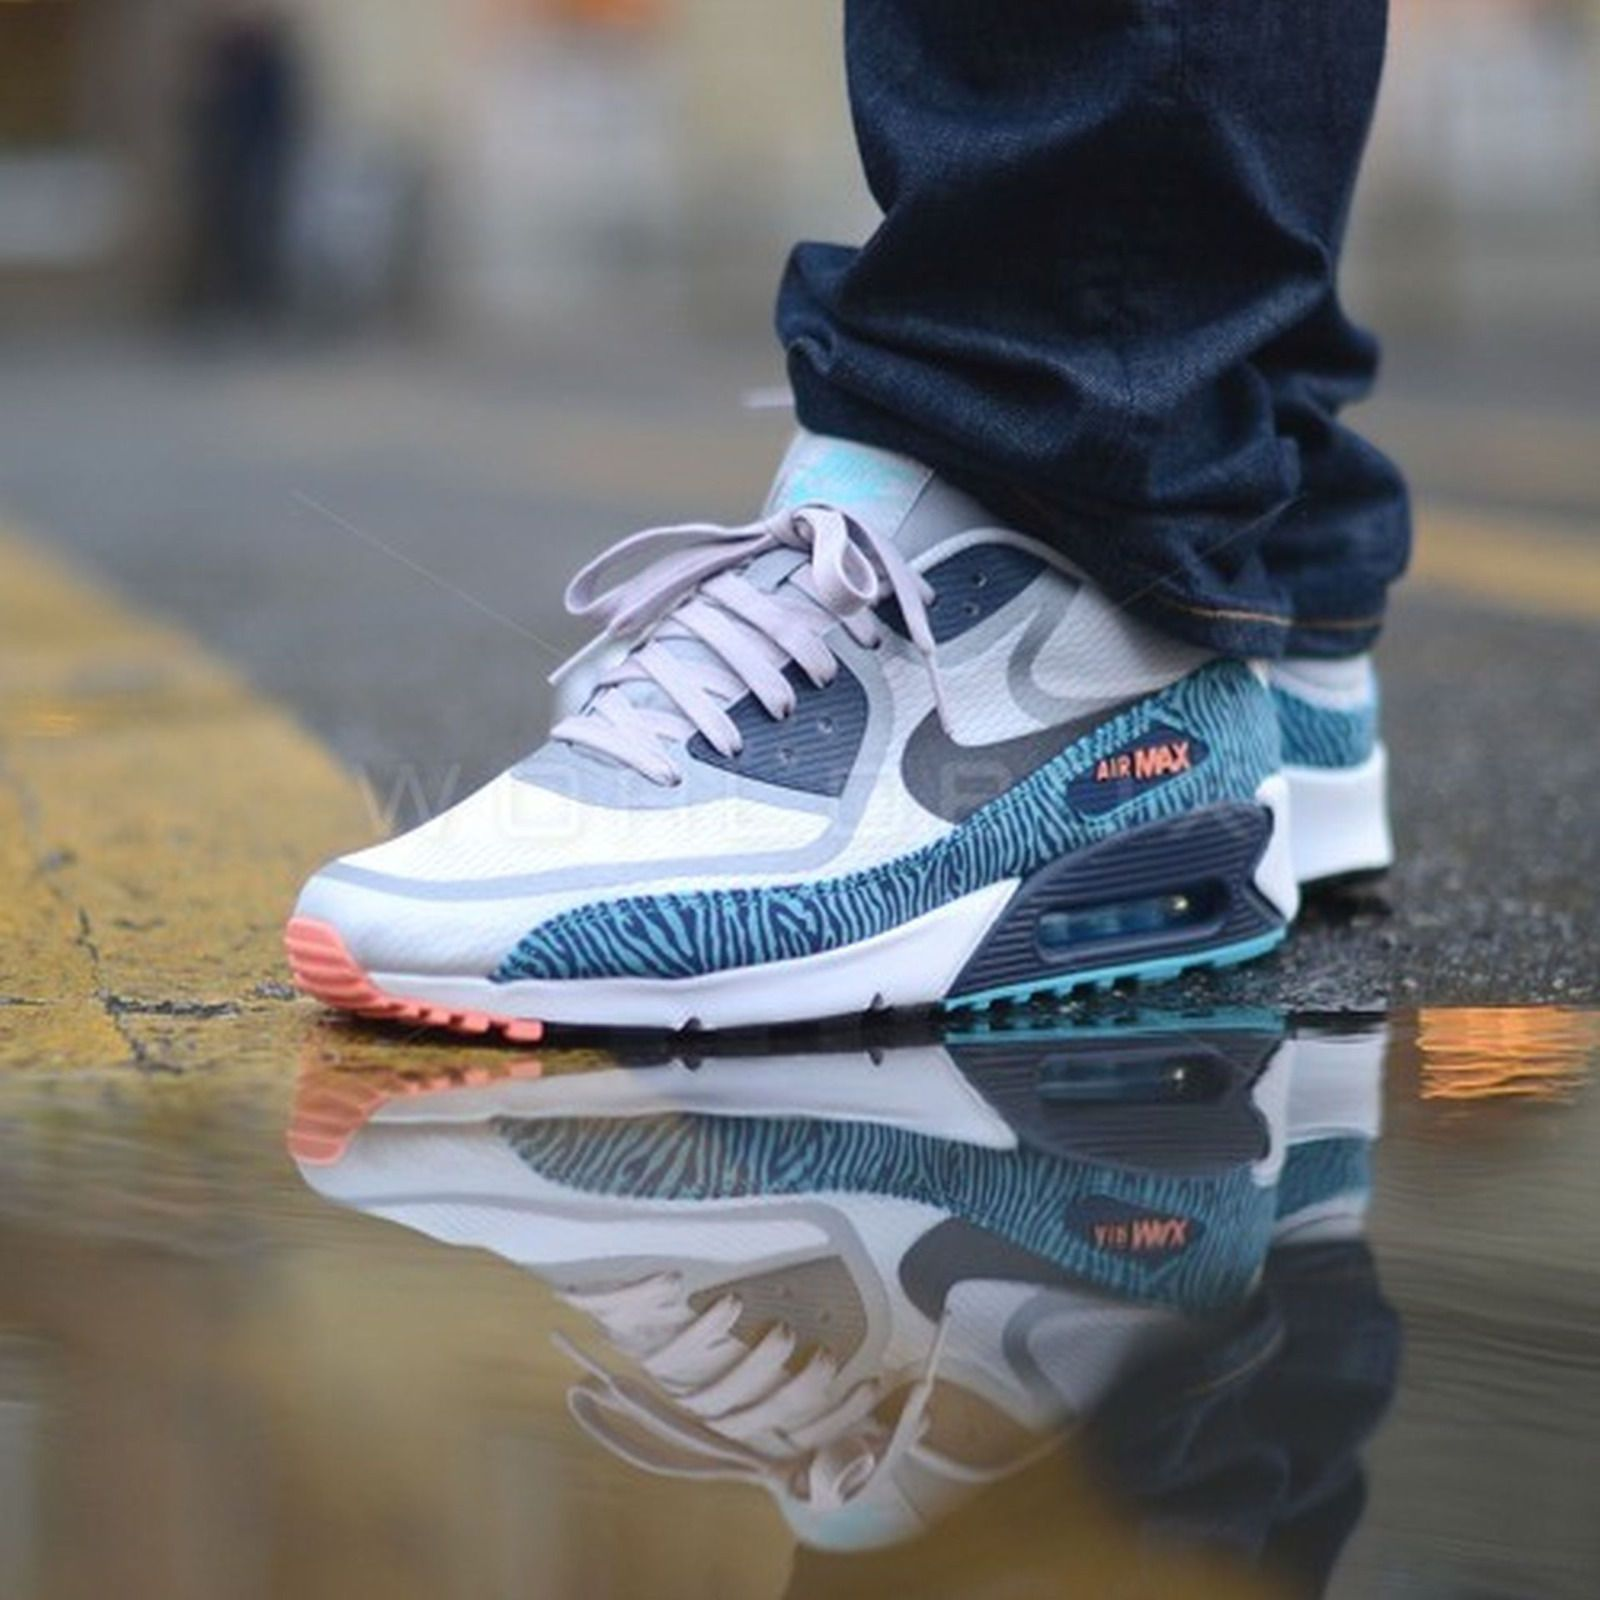 nike air max 90 prm tape zebra